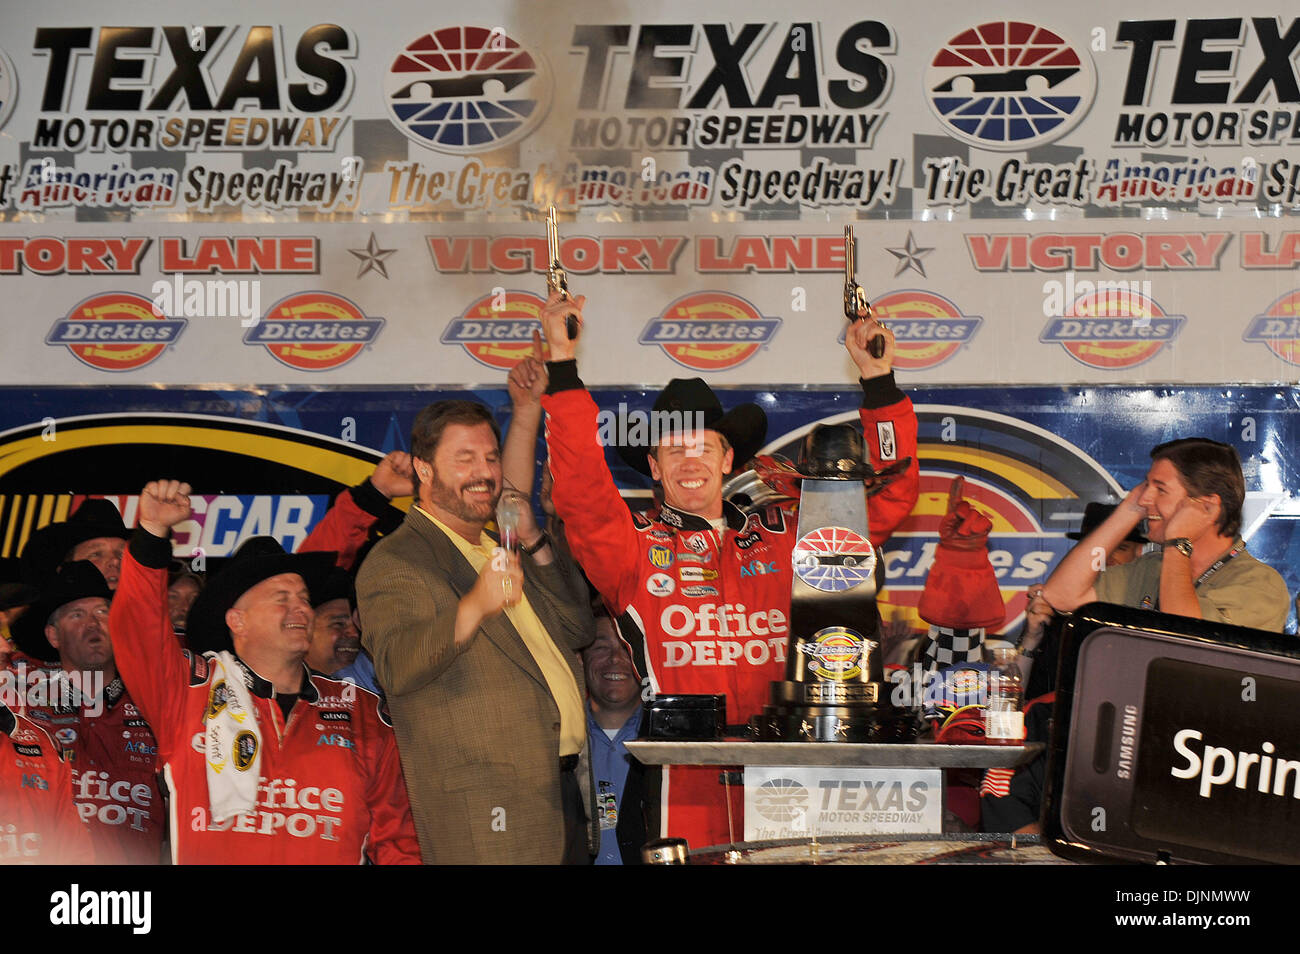 Nov 01, 2008 - Fort Worth, Texas, USA - CARL EDWARDS celebrates his win of the NASCAR Dickies 500 at the Texas Motor Speedway.